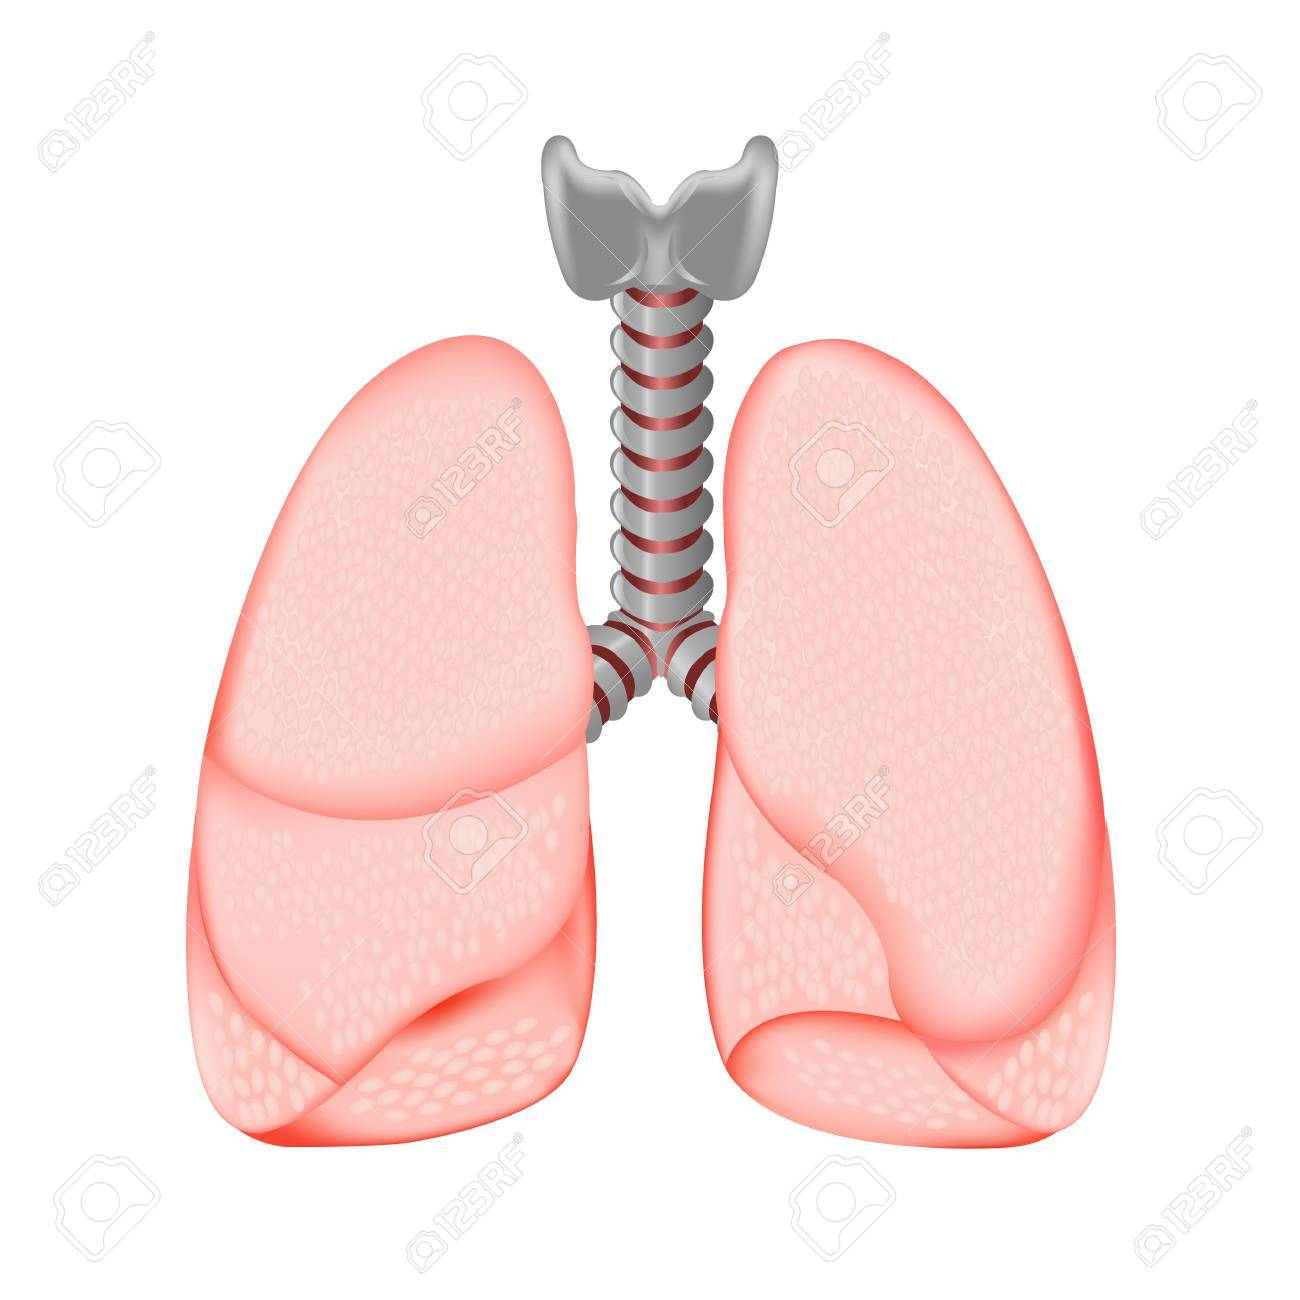 Human Lungs, Isolated On White Background, Vector Illustration Stock Vector - 11656634